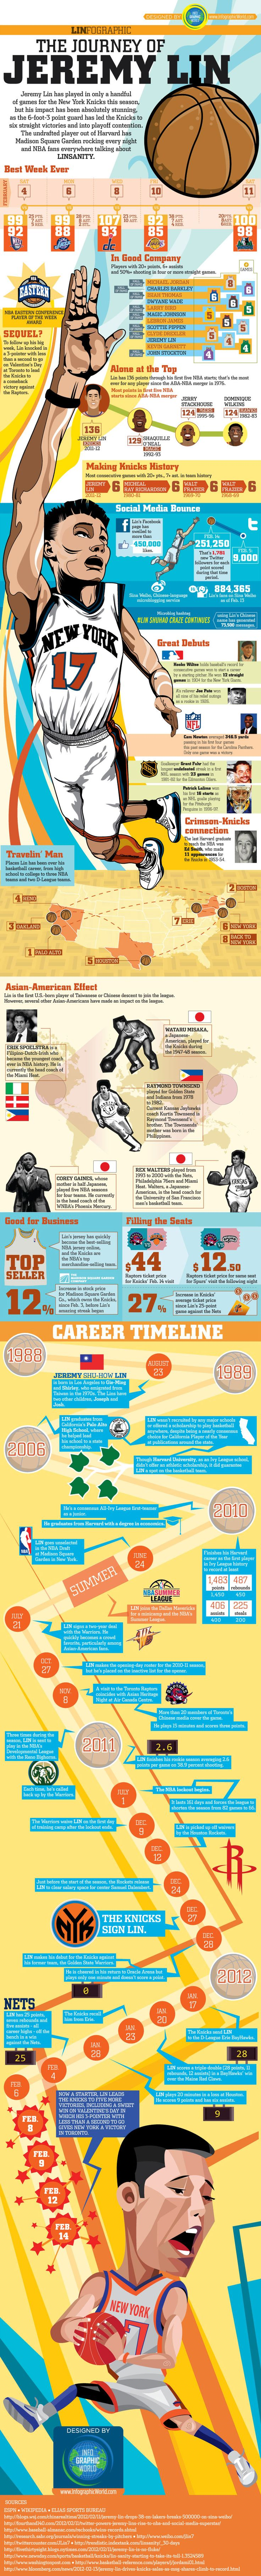 There is not much I need to say. It's all right there in pictures. Who needs to read (well a little) about the rise of the New York Knicks Superstar Jeremy Lin when it's all laid out in a beautiful infographic aka comic strip aka picture book?    Immerse yourself in the pictures and words of Linsanity!